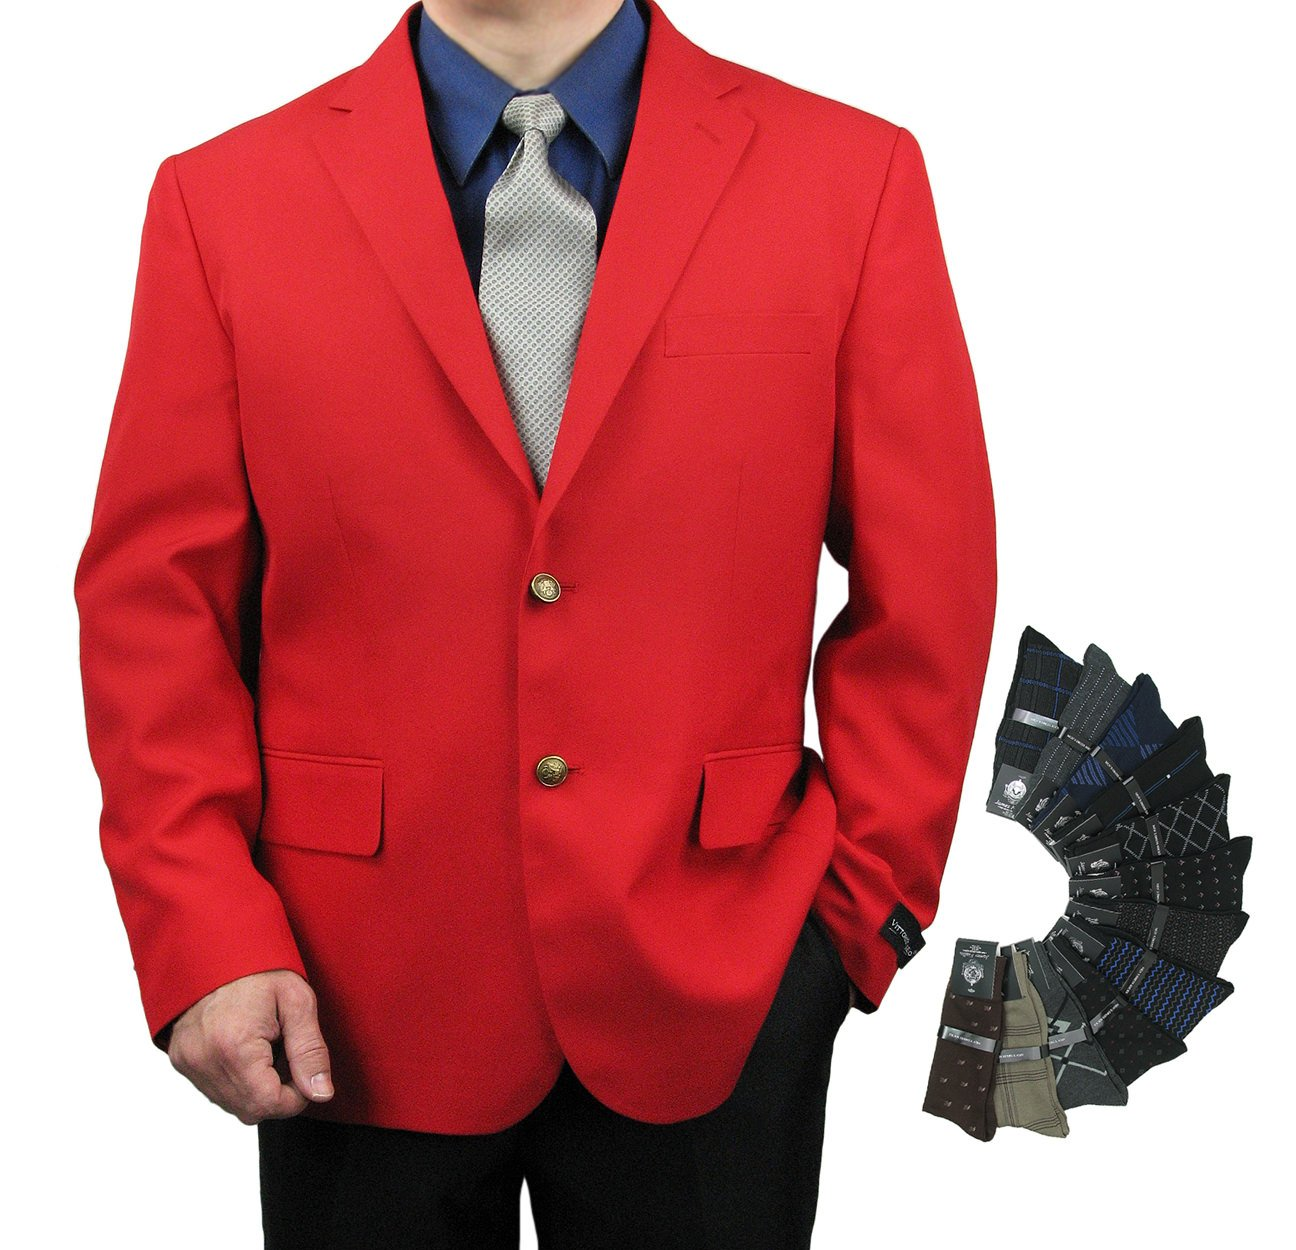 Men's Classic Fit Single-Breasted 2-Button Blazer Jacket Sports Coat w/One Pair Of Dress Socks (Variety Of Colors) - Red 42R